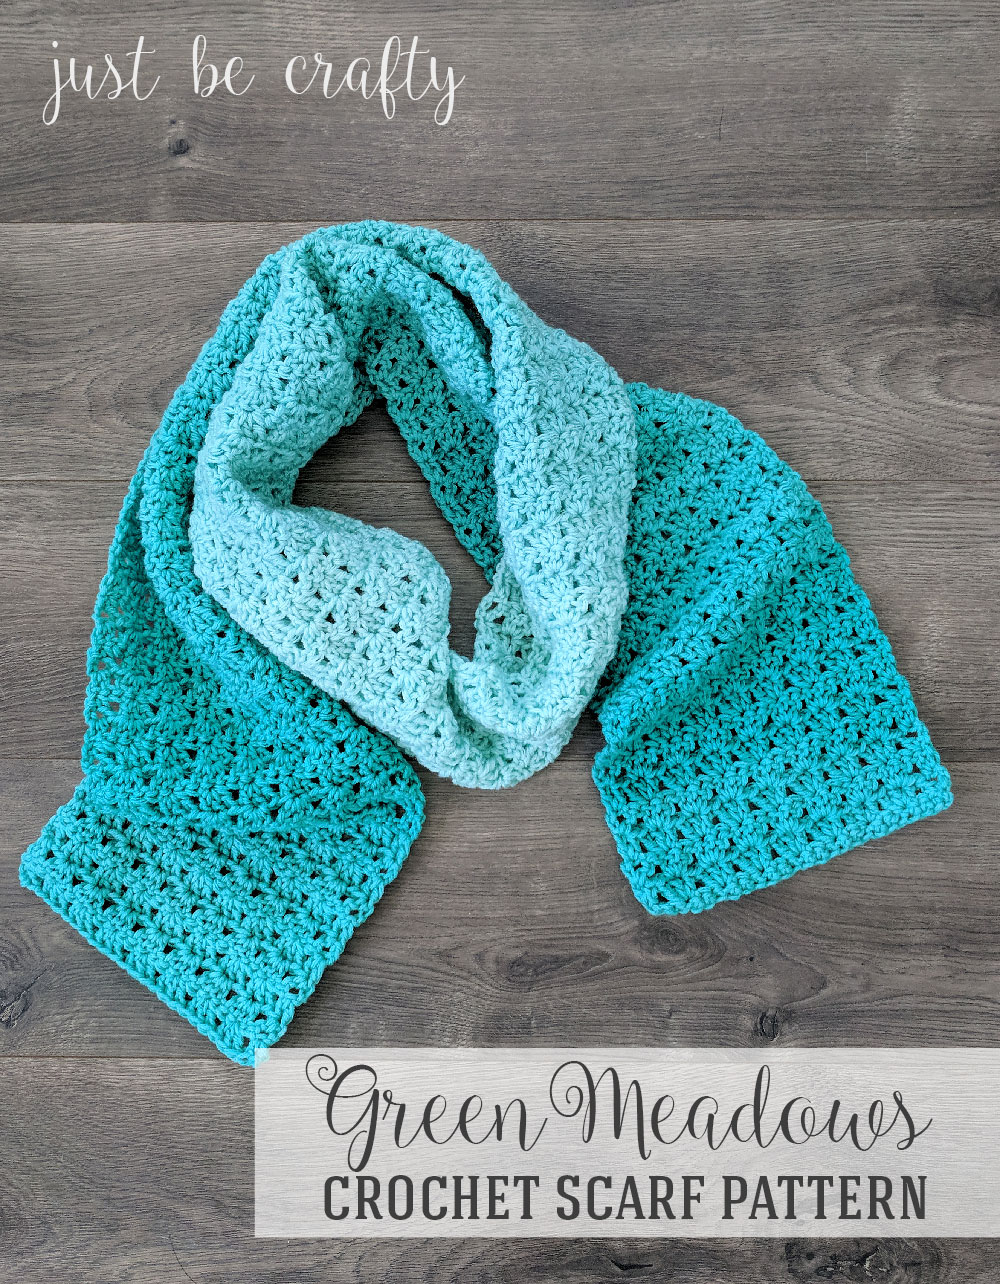 Green Meadows Crochet Scarf Pattern Free Pattern By Just Be Crafty